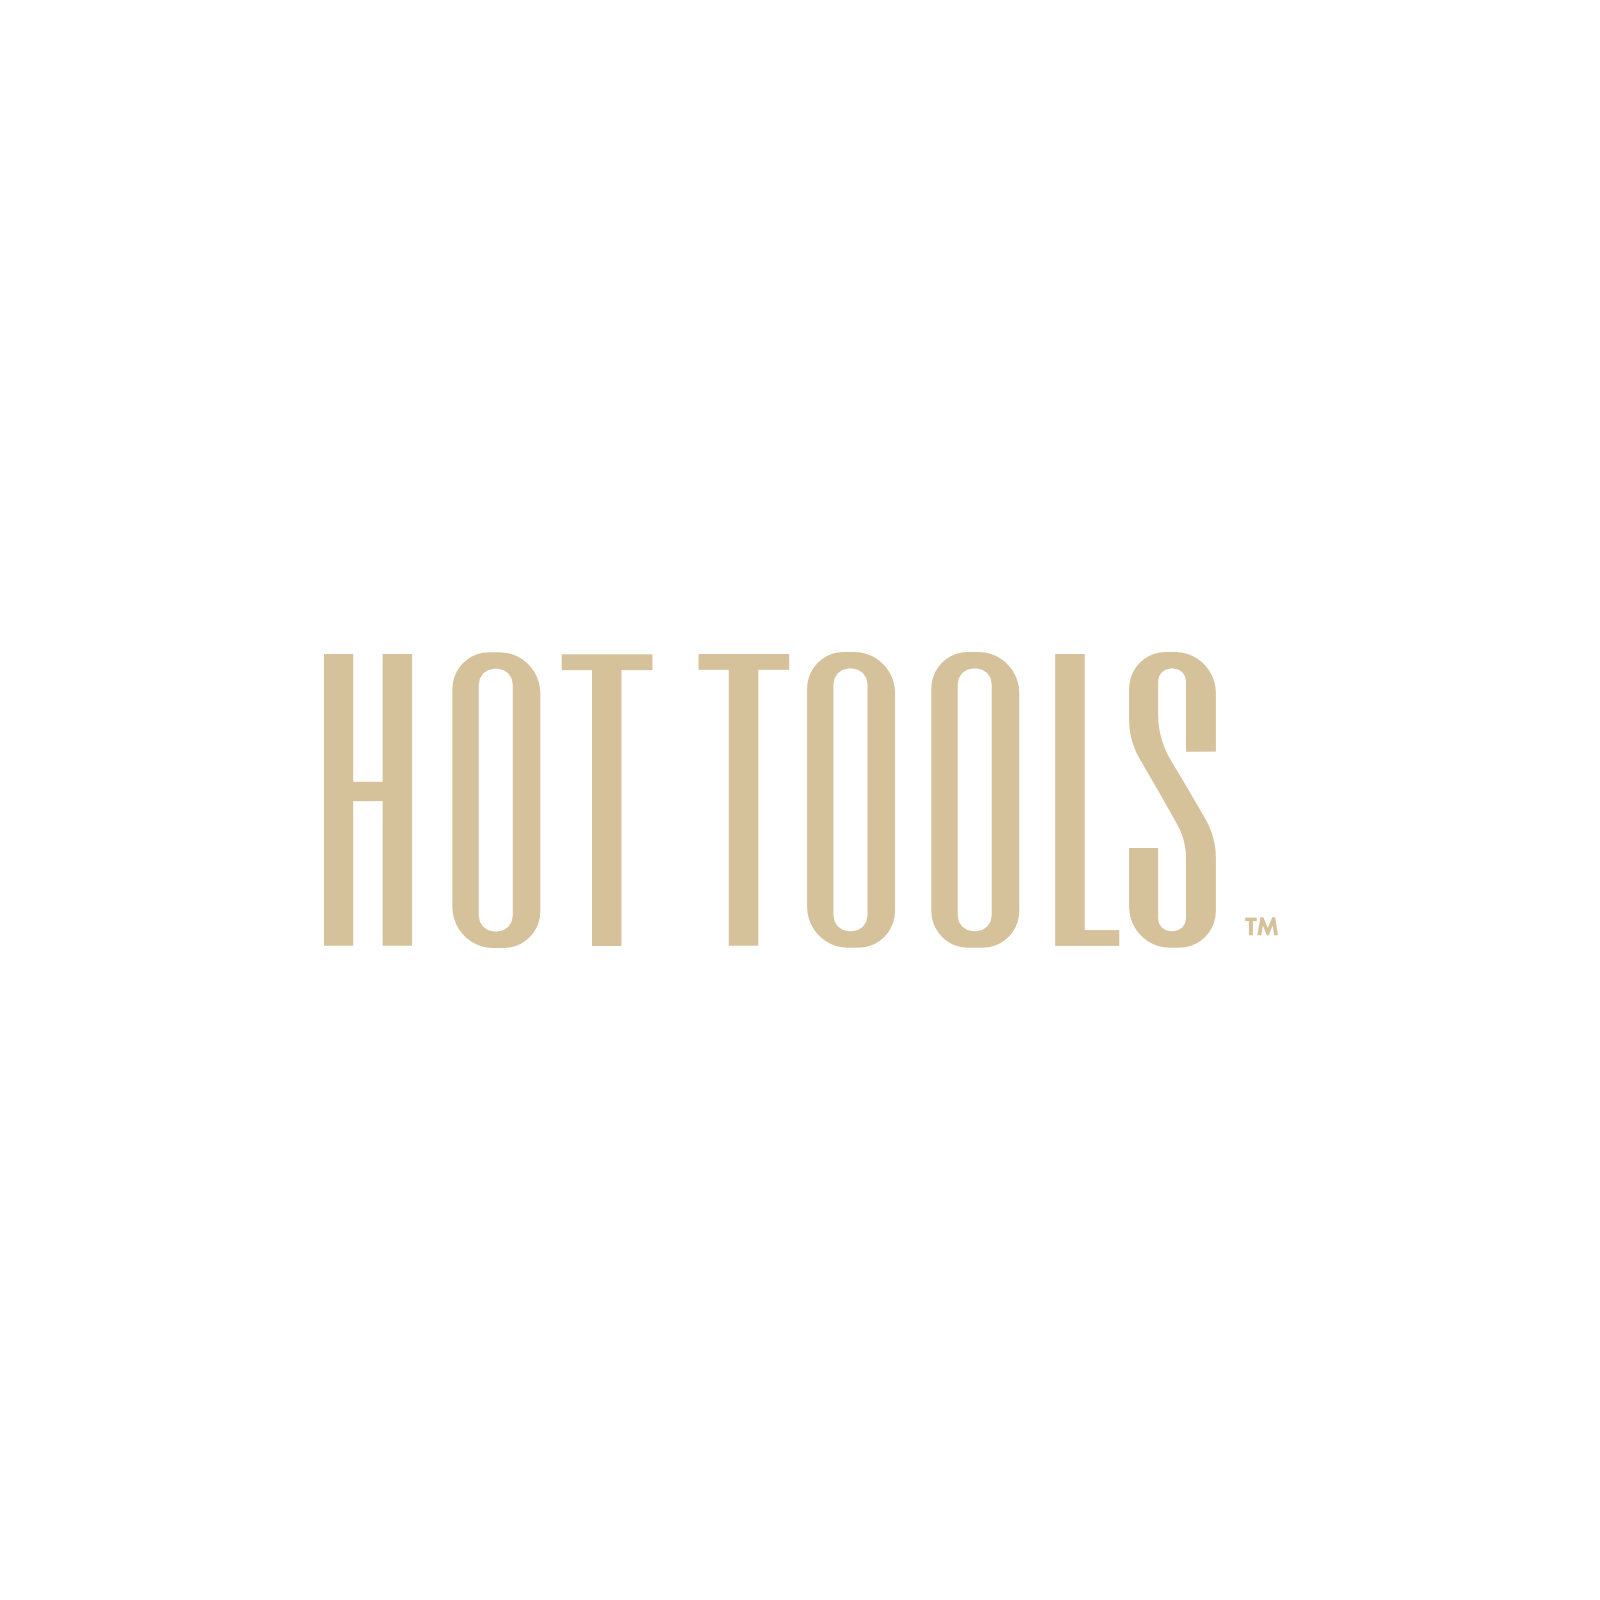 HOT TOOLS Signature Series 1875W Ionic Travel Hair Dryer product image